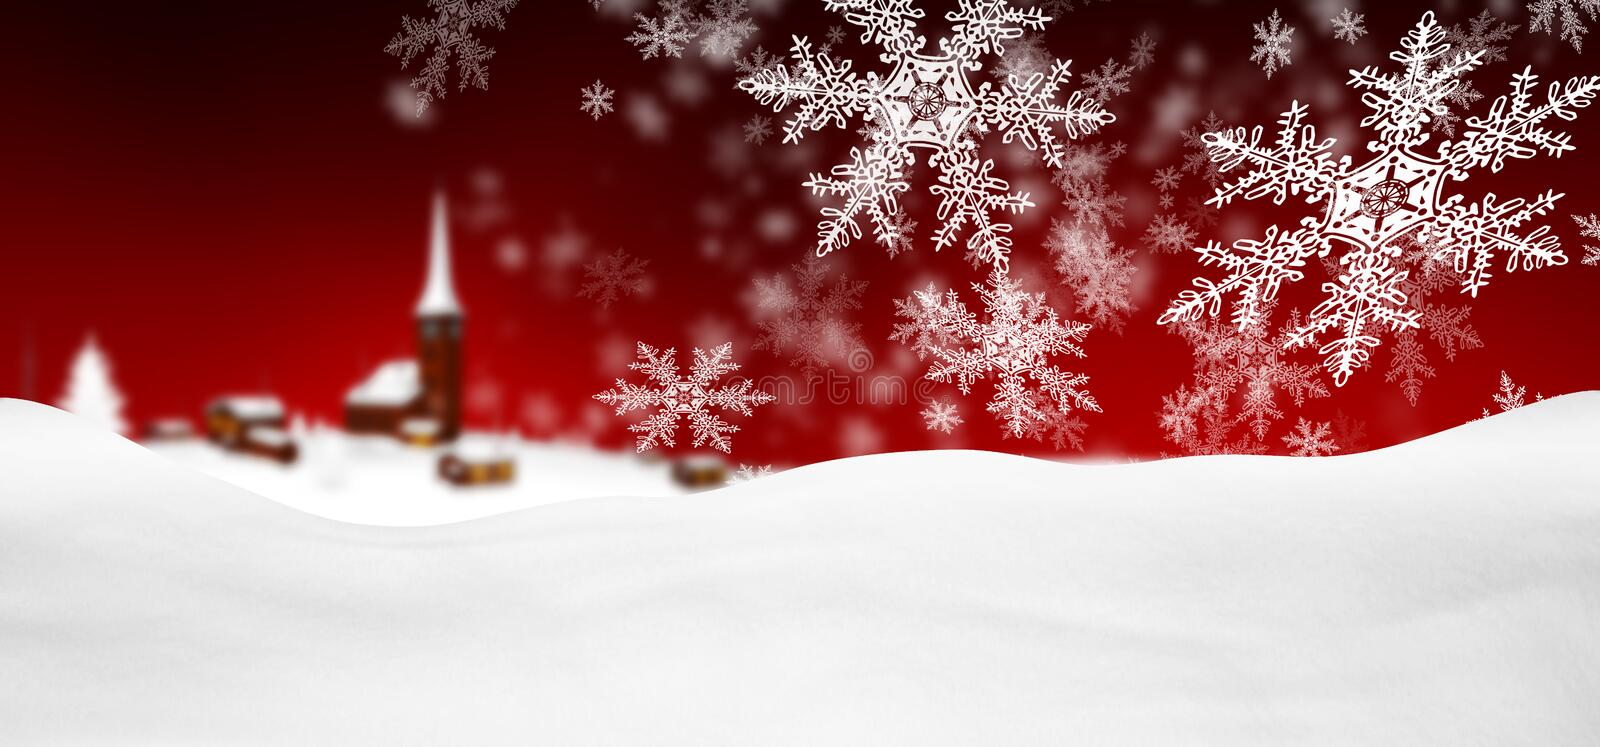 Abstract Red Background Panorama Winter Landscape with Falling S royalty free illustration